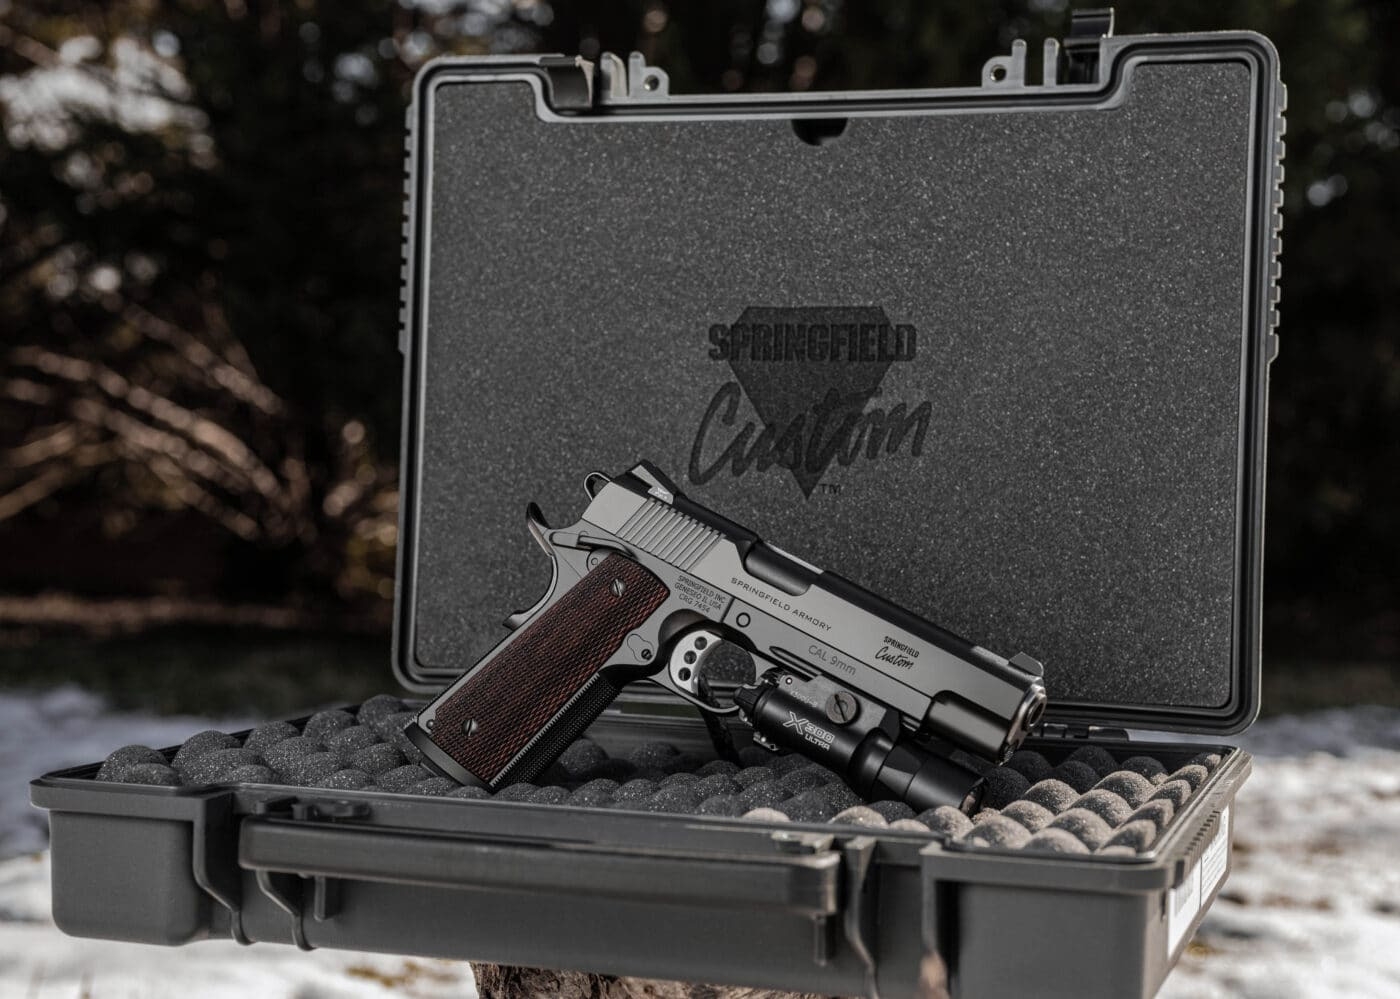 Springfield Armory Professional Light Rail 9mm pistol in carrying case